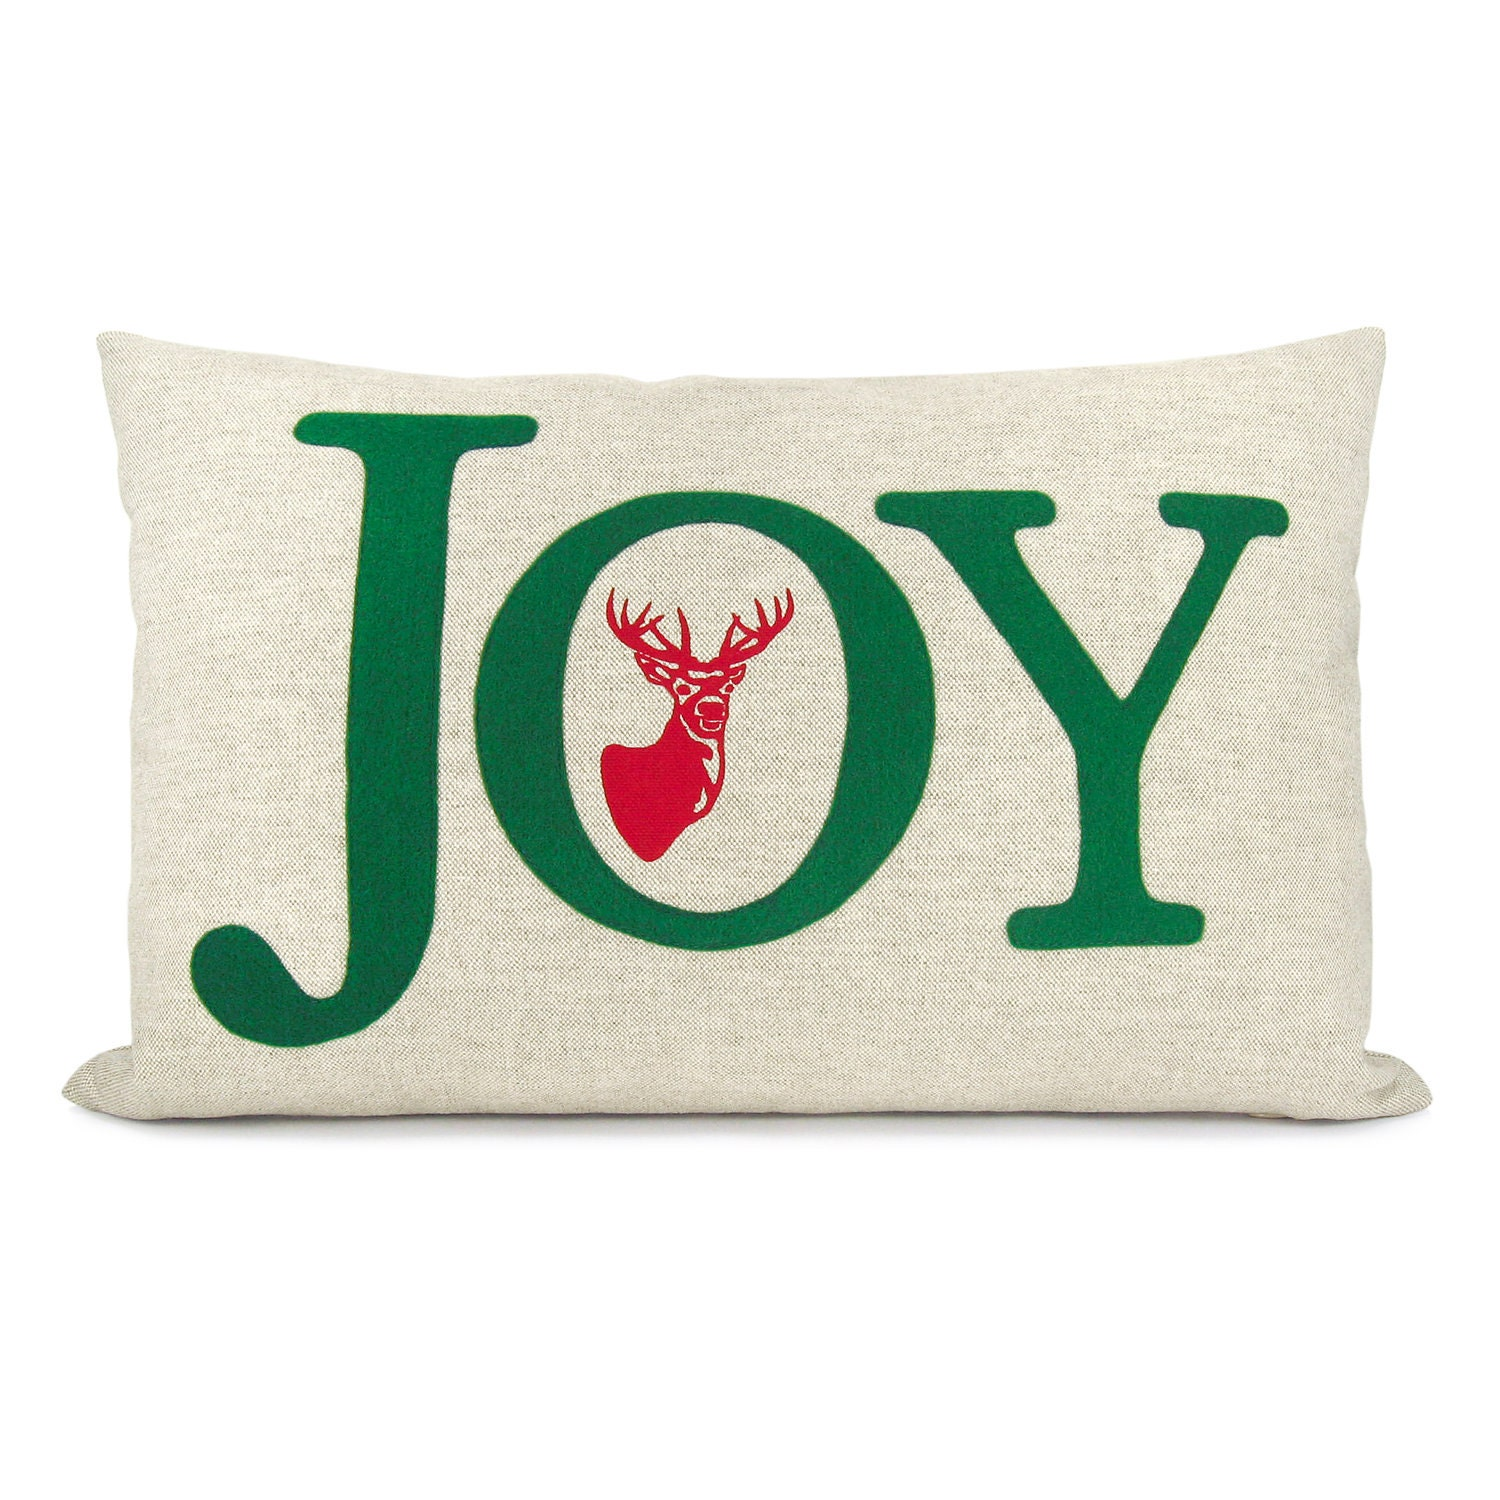 Felt Christmas pillow cover, Holiday decoration - Green JOY word applique and red reindeer print on natural linen - 12x18 lumbar pillow case - ClassicByNature